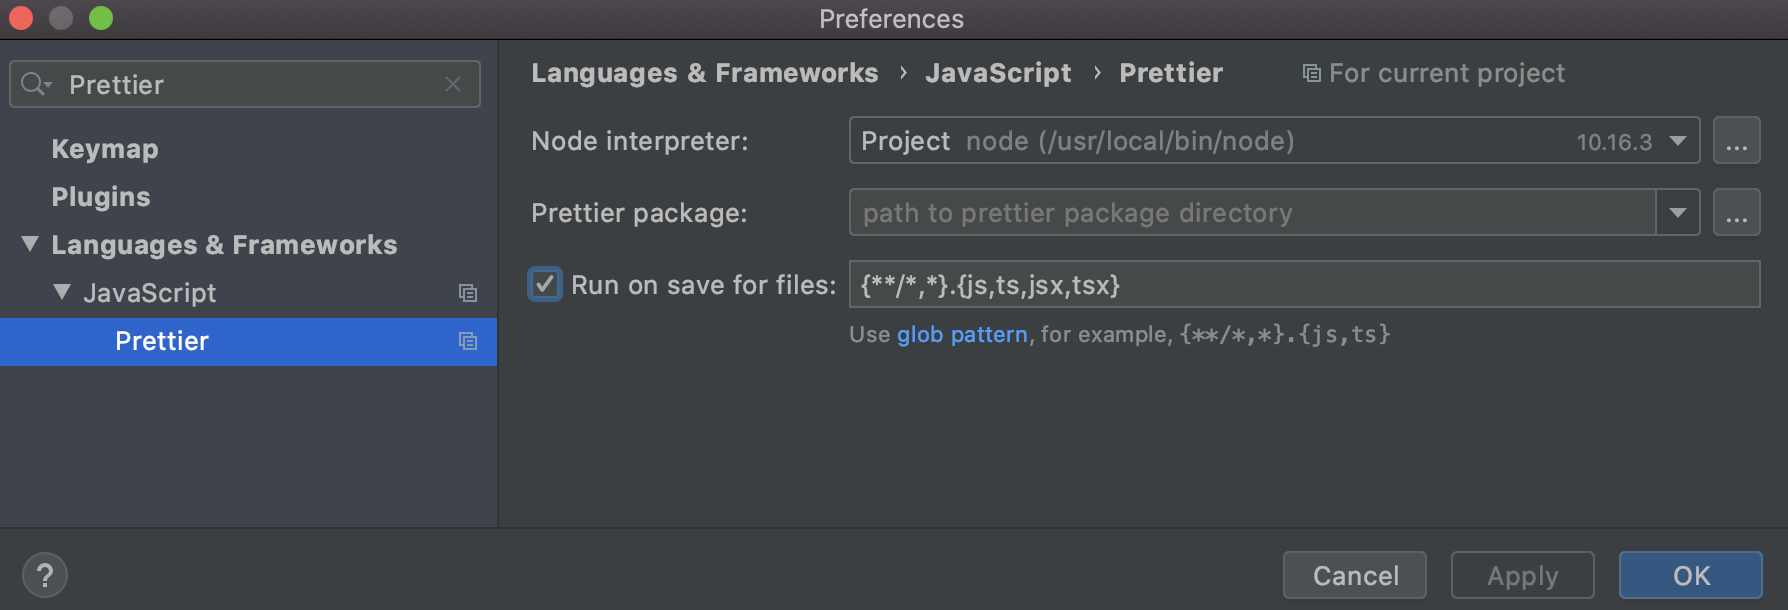 run-on-save-for-files-prettier